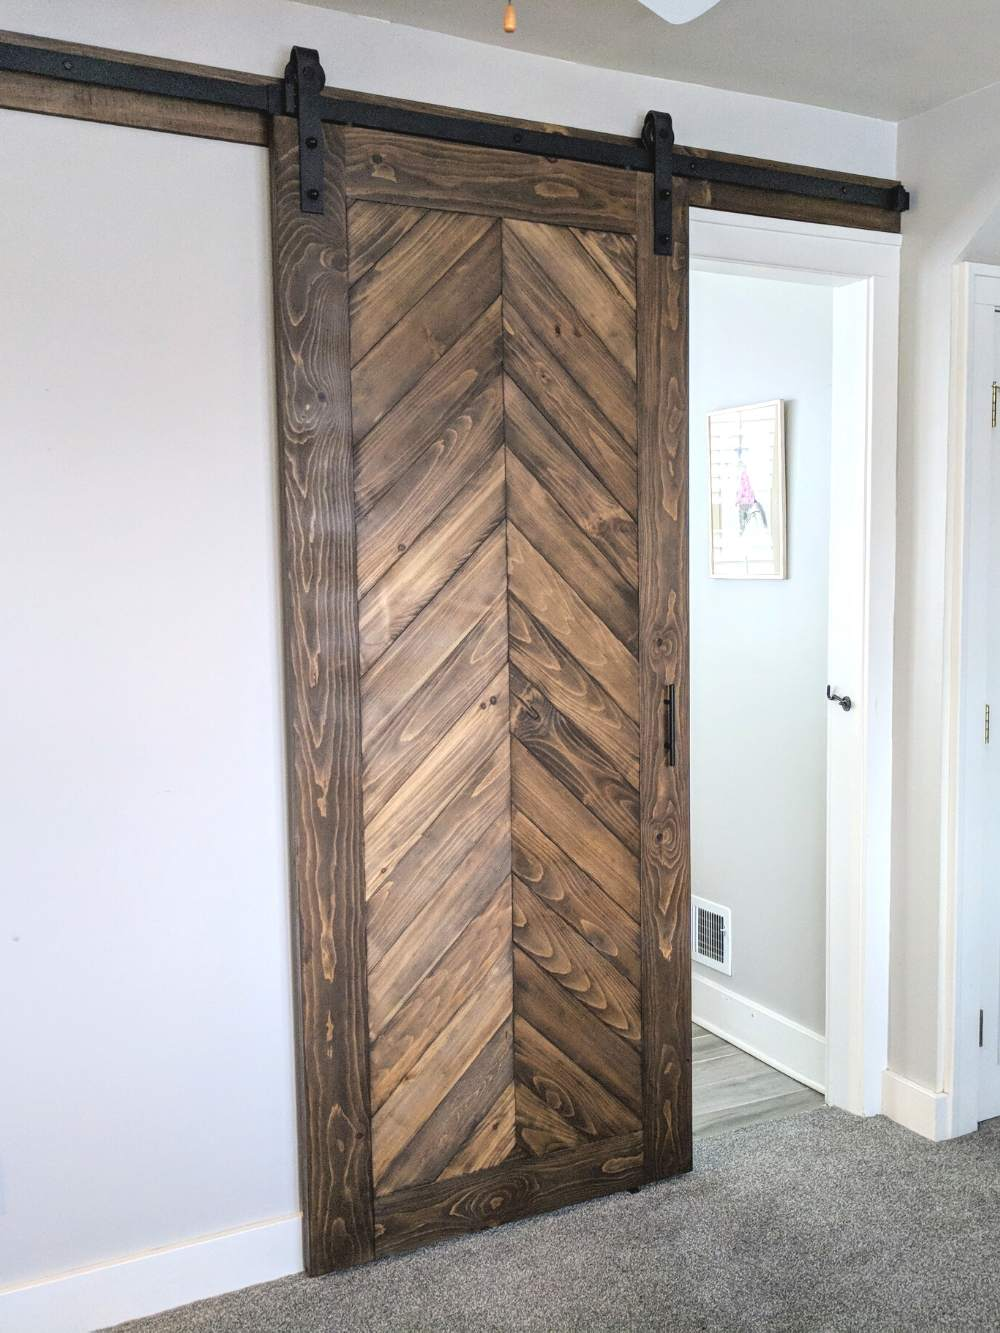 Chevron Barn Door Walston Door Company N Kansas City Mo